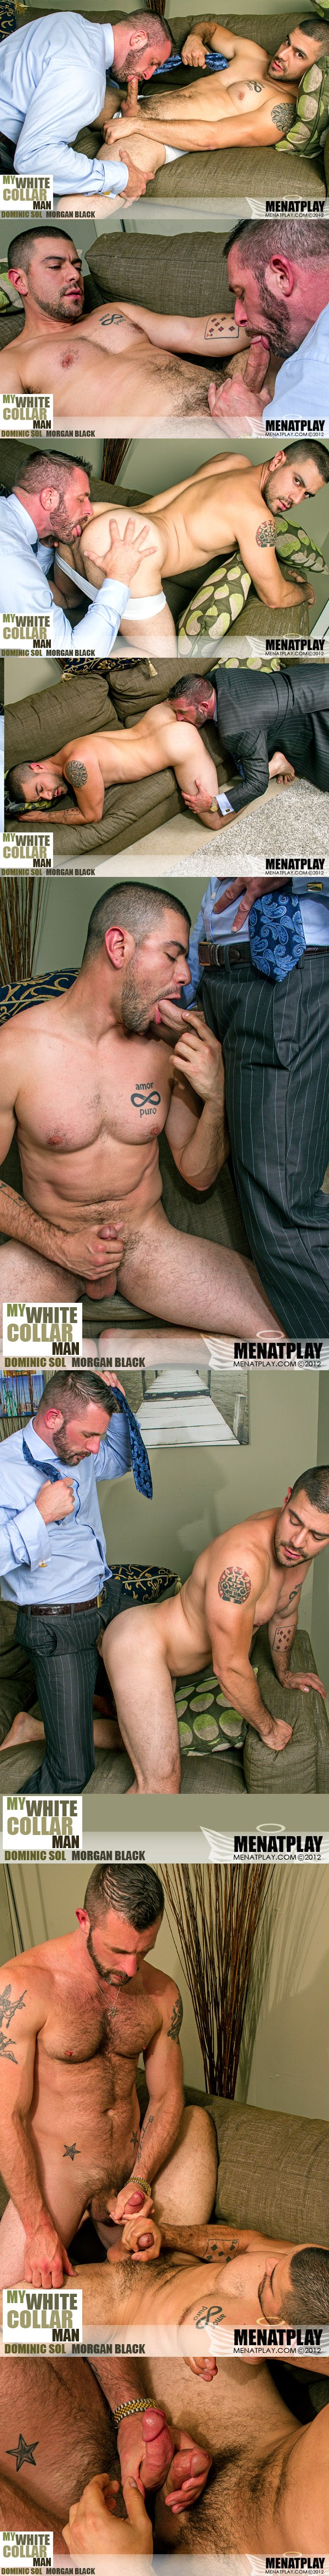 Masculine Morgan Black Pounds handsome Dominic Sol's bubble butt in My White Collar Man at Menatplay 01